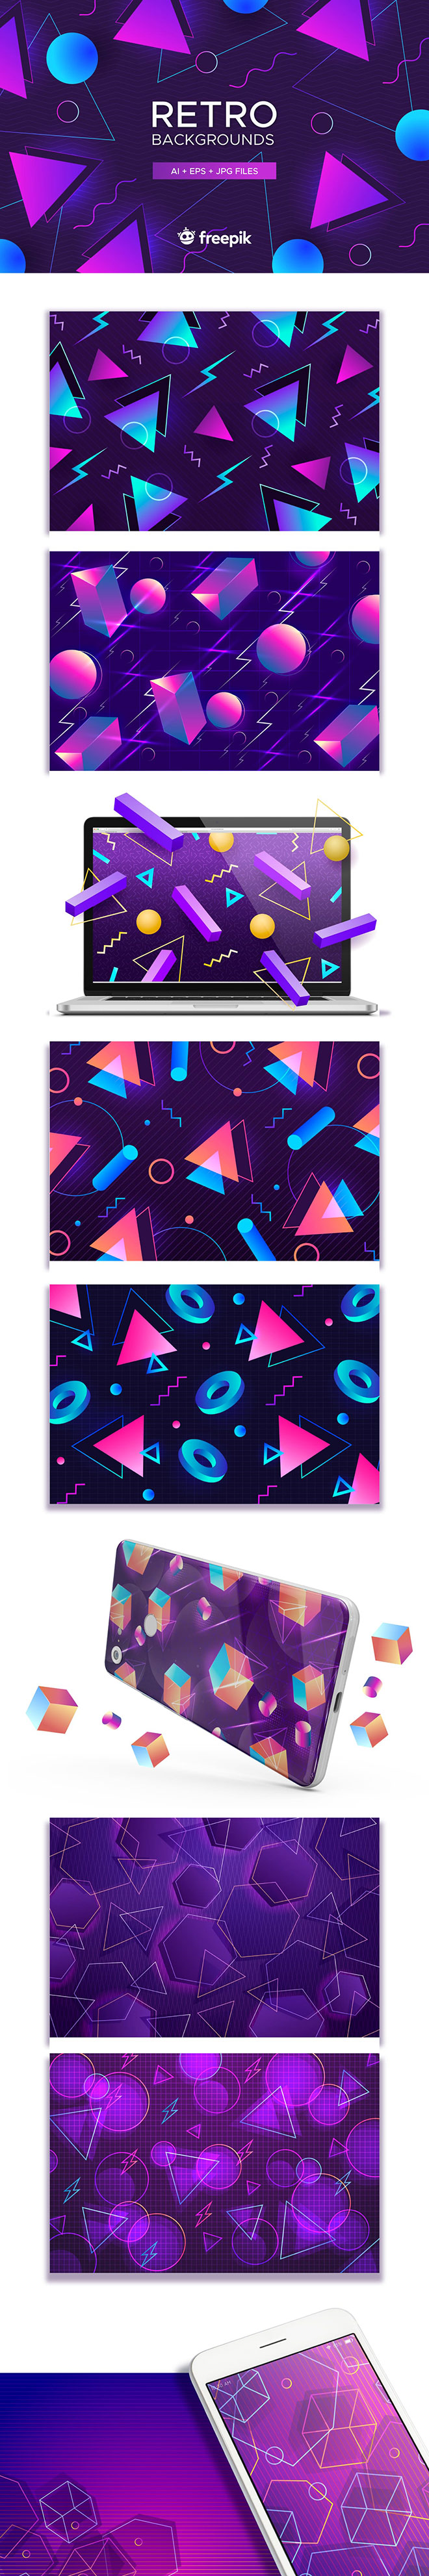 10 Retro Abstract Backgrounds for Premium Members